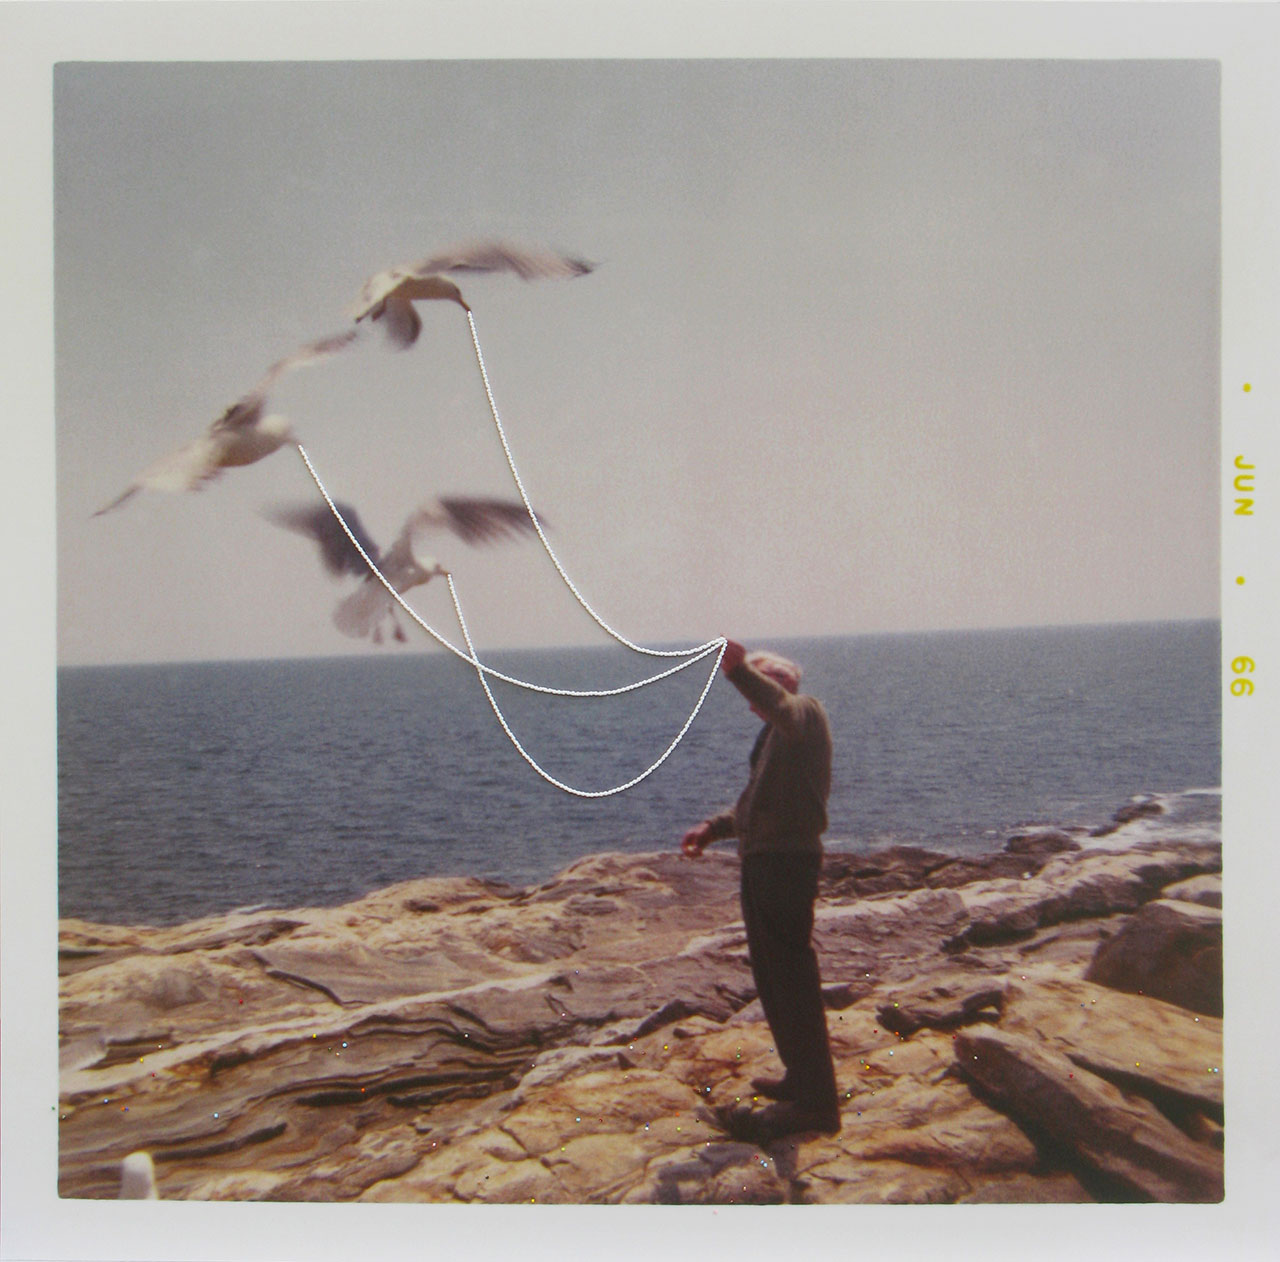 Julie Cockburn, Feed the Birds (Man), 2019. C type print of found photograph, glass beads. © Julie Cockburn, courtesy of Flowers Gallery.